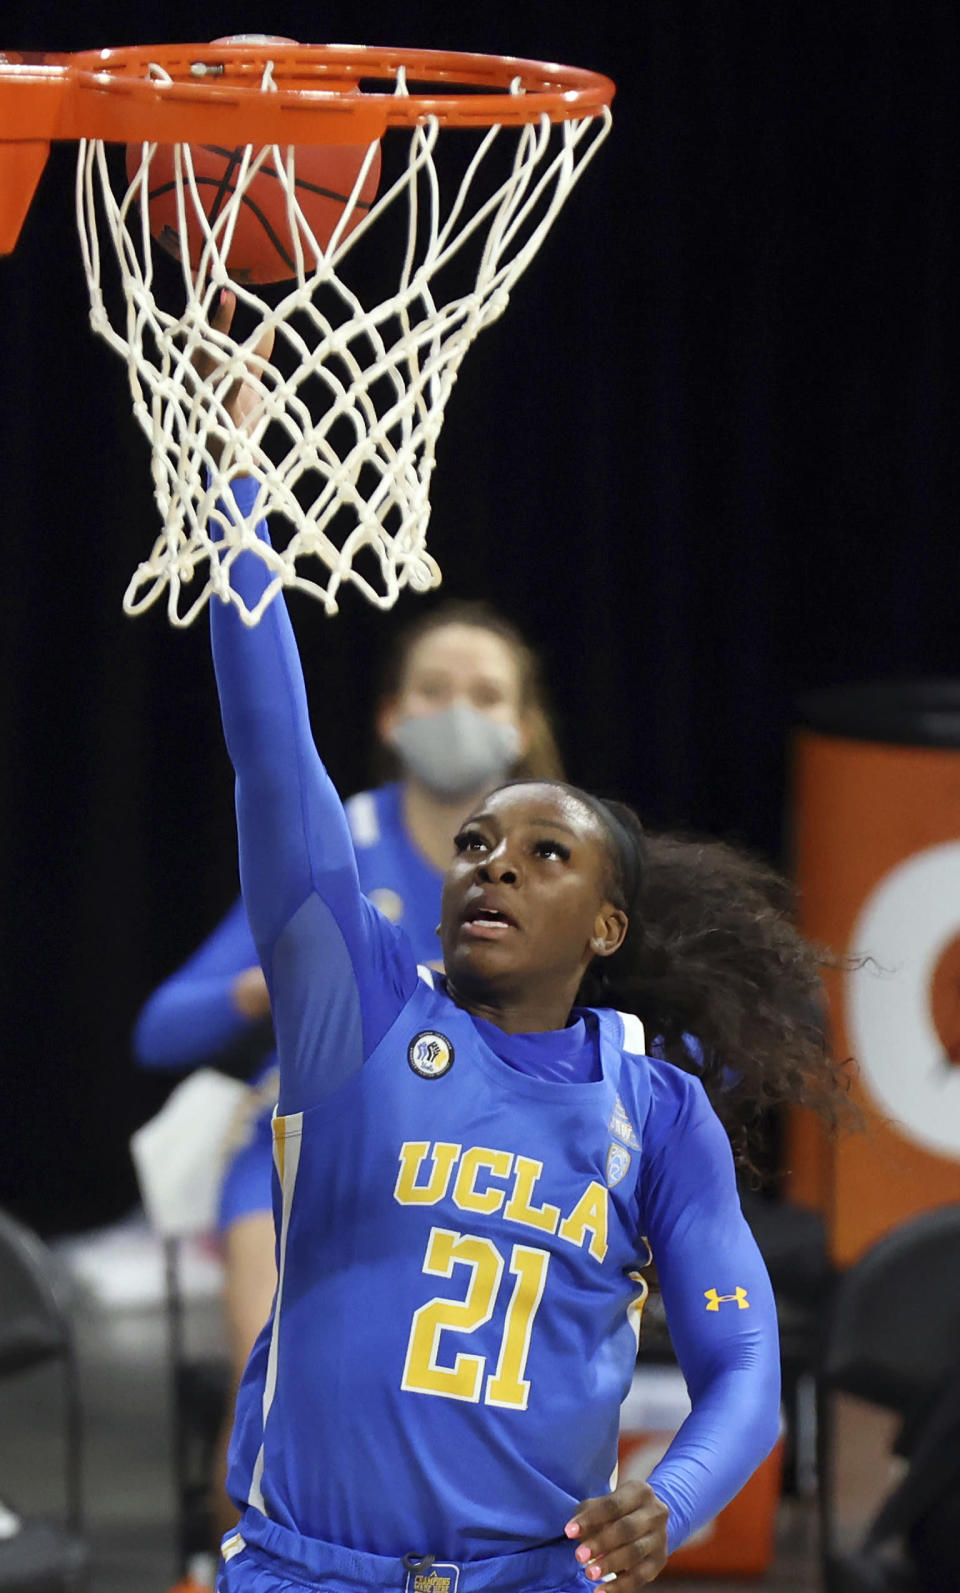 UCLA forward Michaela Onyenwere shoots during the second half of the team's NCAA college basketball game against Arizona in the semifinals of the Pac-12 women's tournament Friday, March 5, 2021, in Las Vegas. (AP Photo/Isaac Brekken)